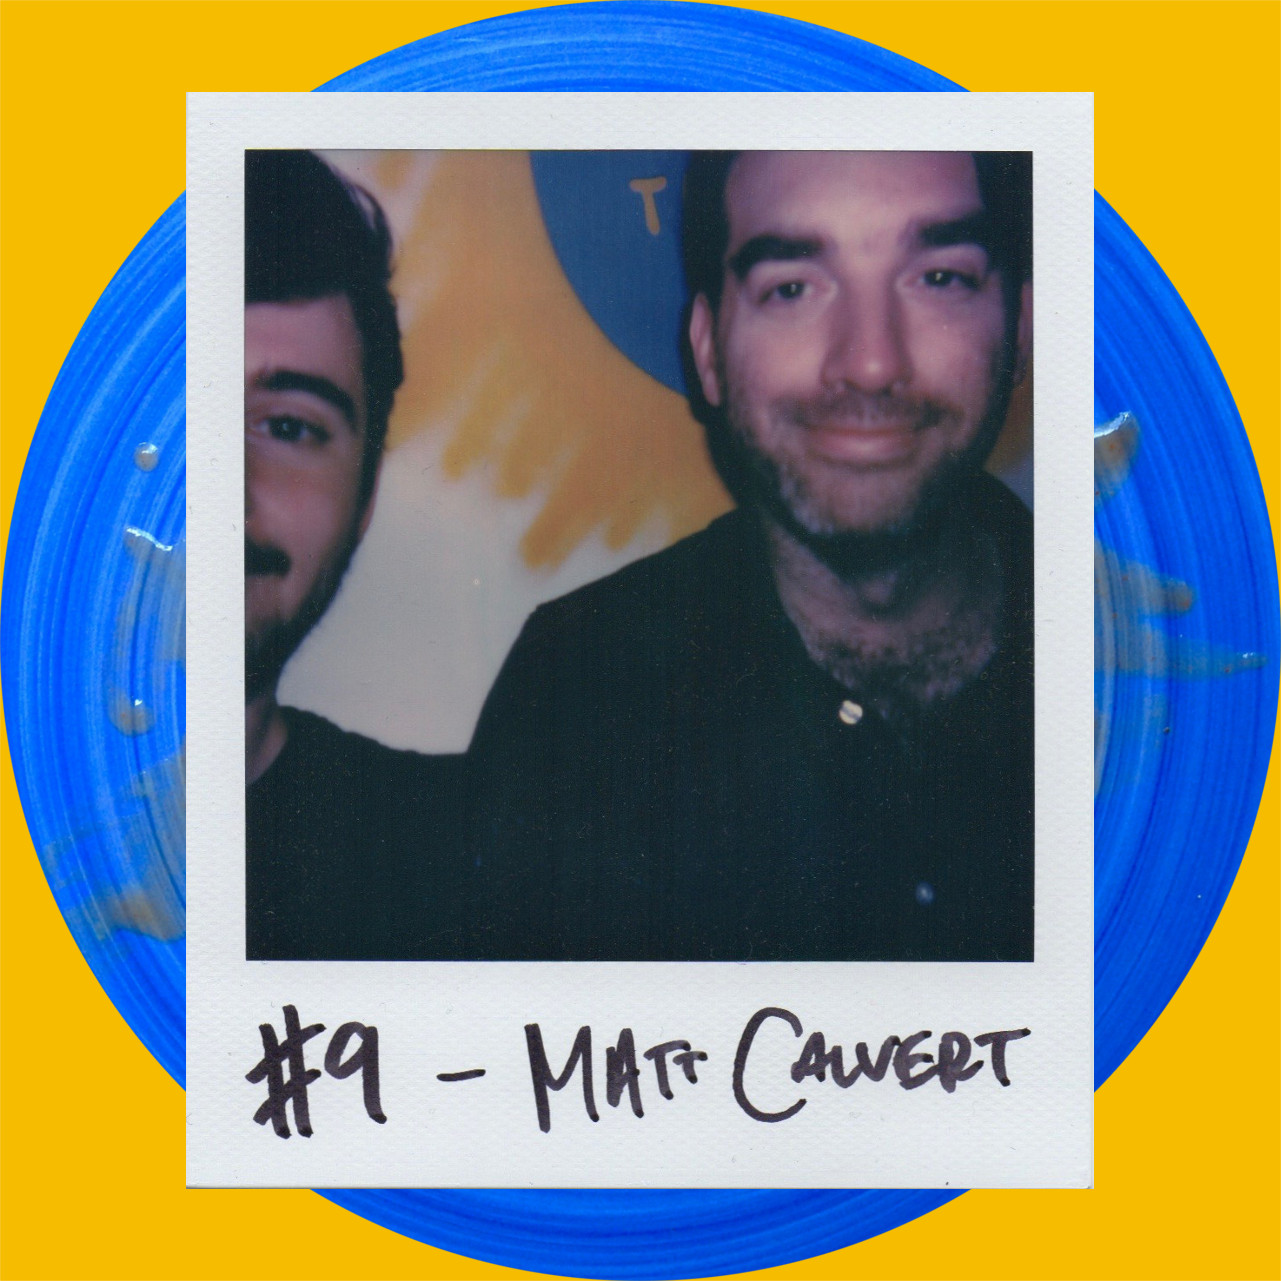 #9A Matt Calvert [CHAT]